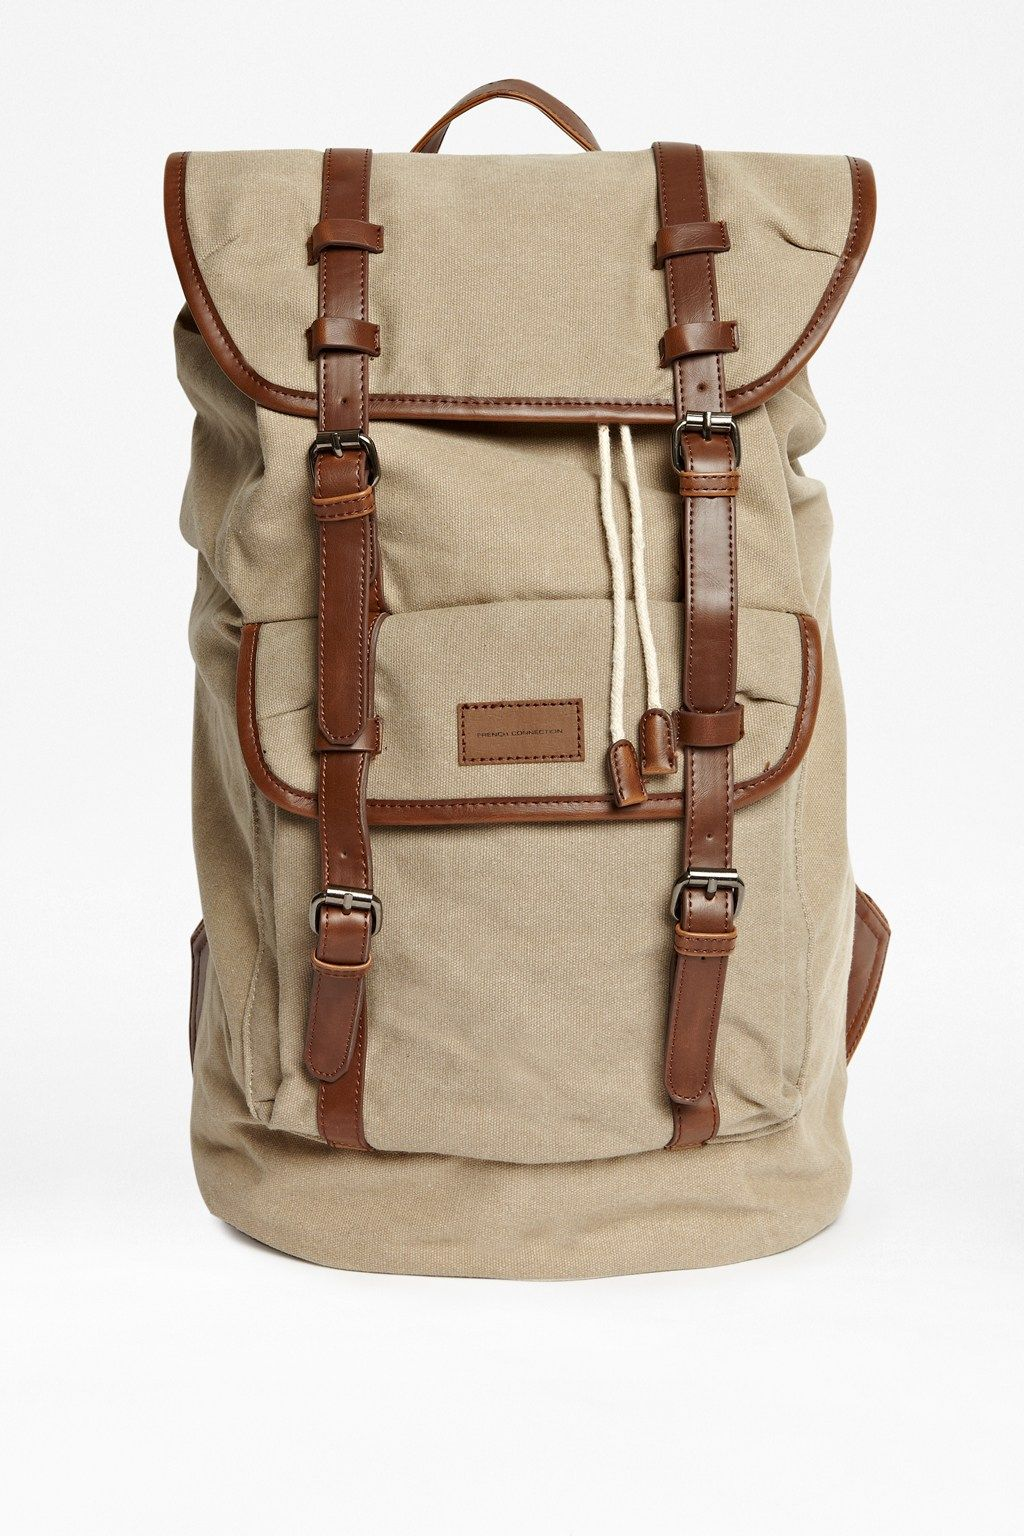 Leave No Trace Large Rucksack - Mens Accessories - French Connection